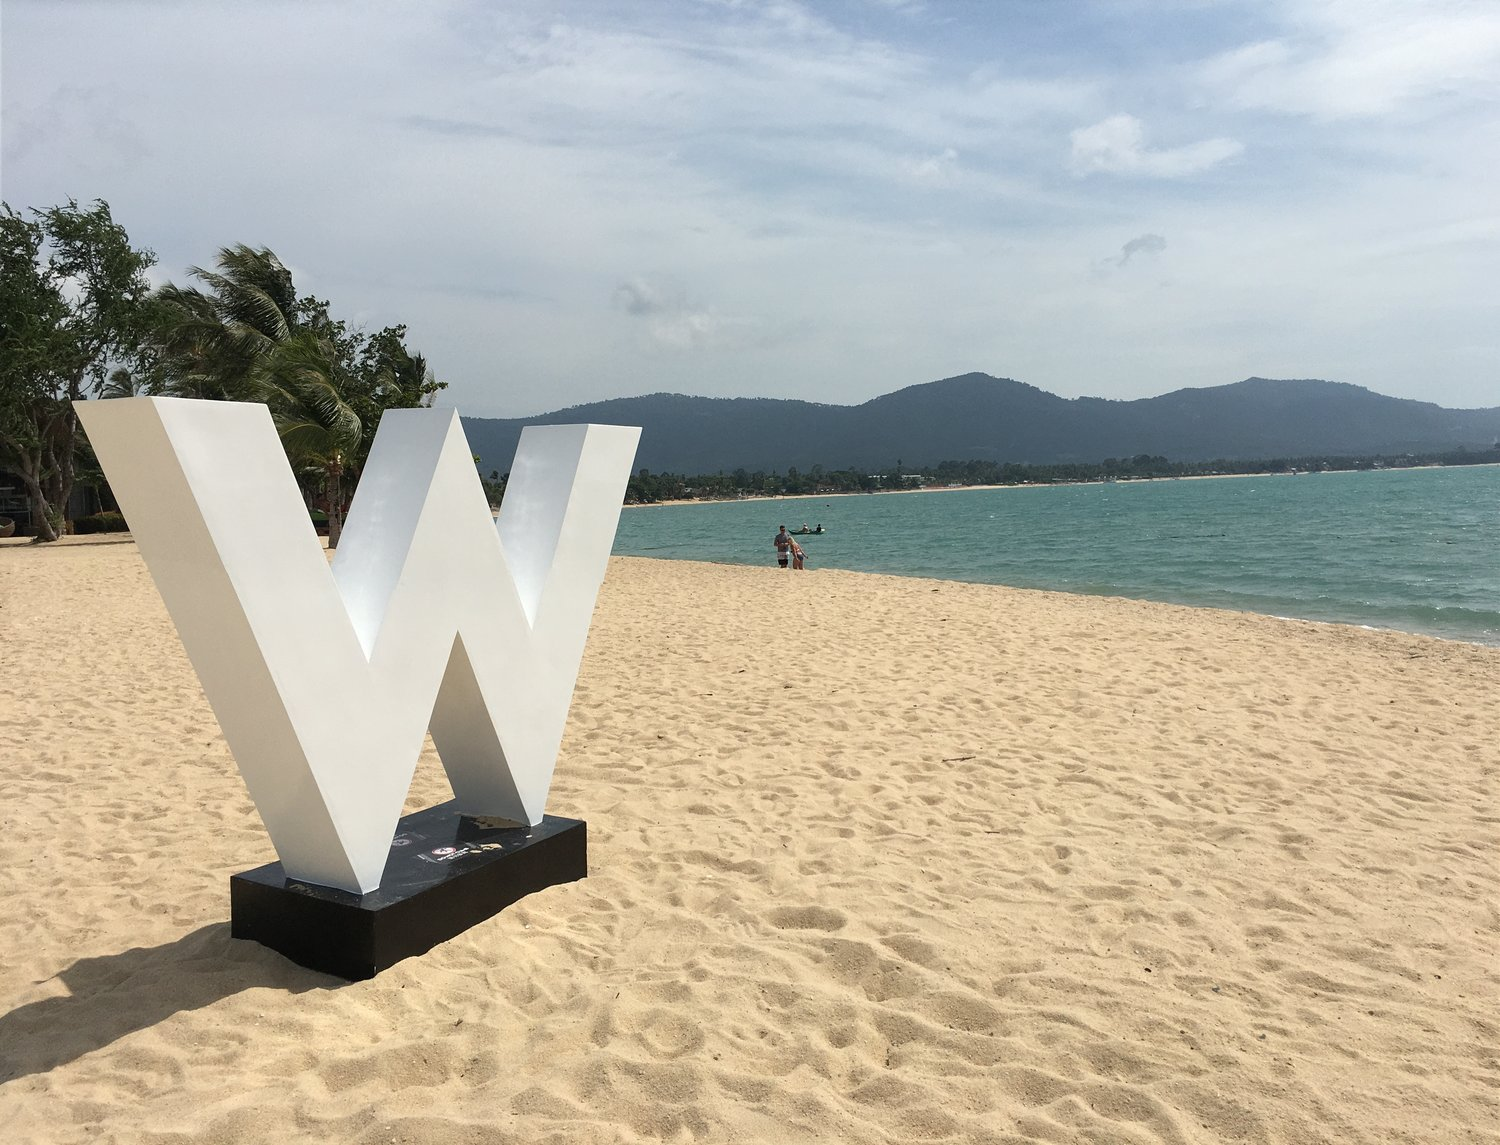 Koh Samui, Thailand: Luxury at the W Hotel, Nikki Beach. Jungles, Waterfalls and a Mummified Monk